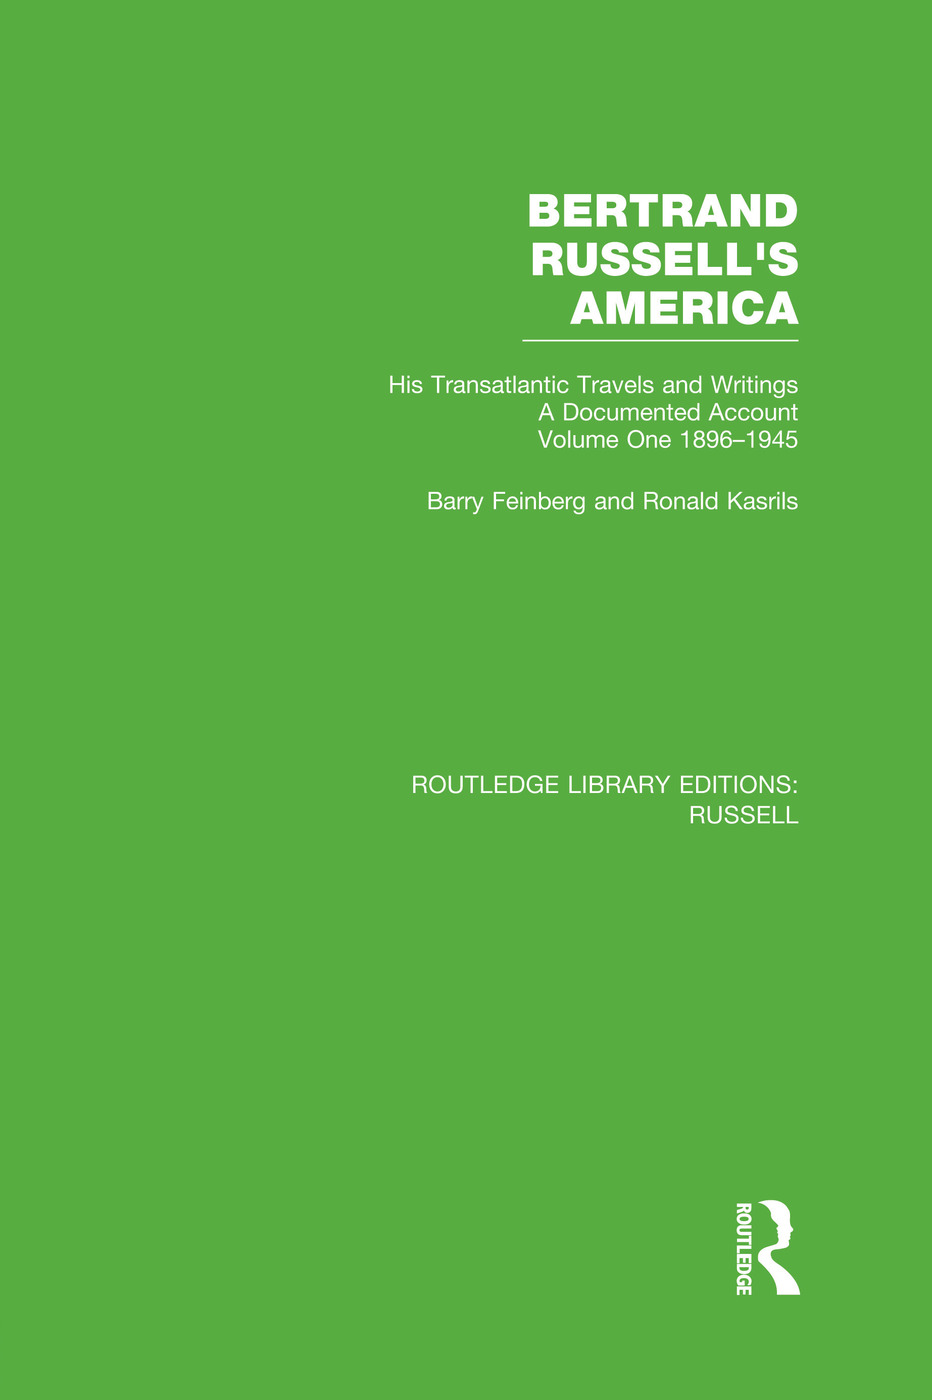 Bertrand Russell's America: His Transatlantic Travels and Writings. Volume One 1896-1945 book cover